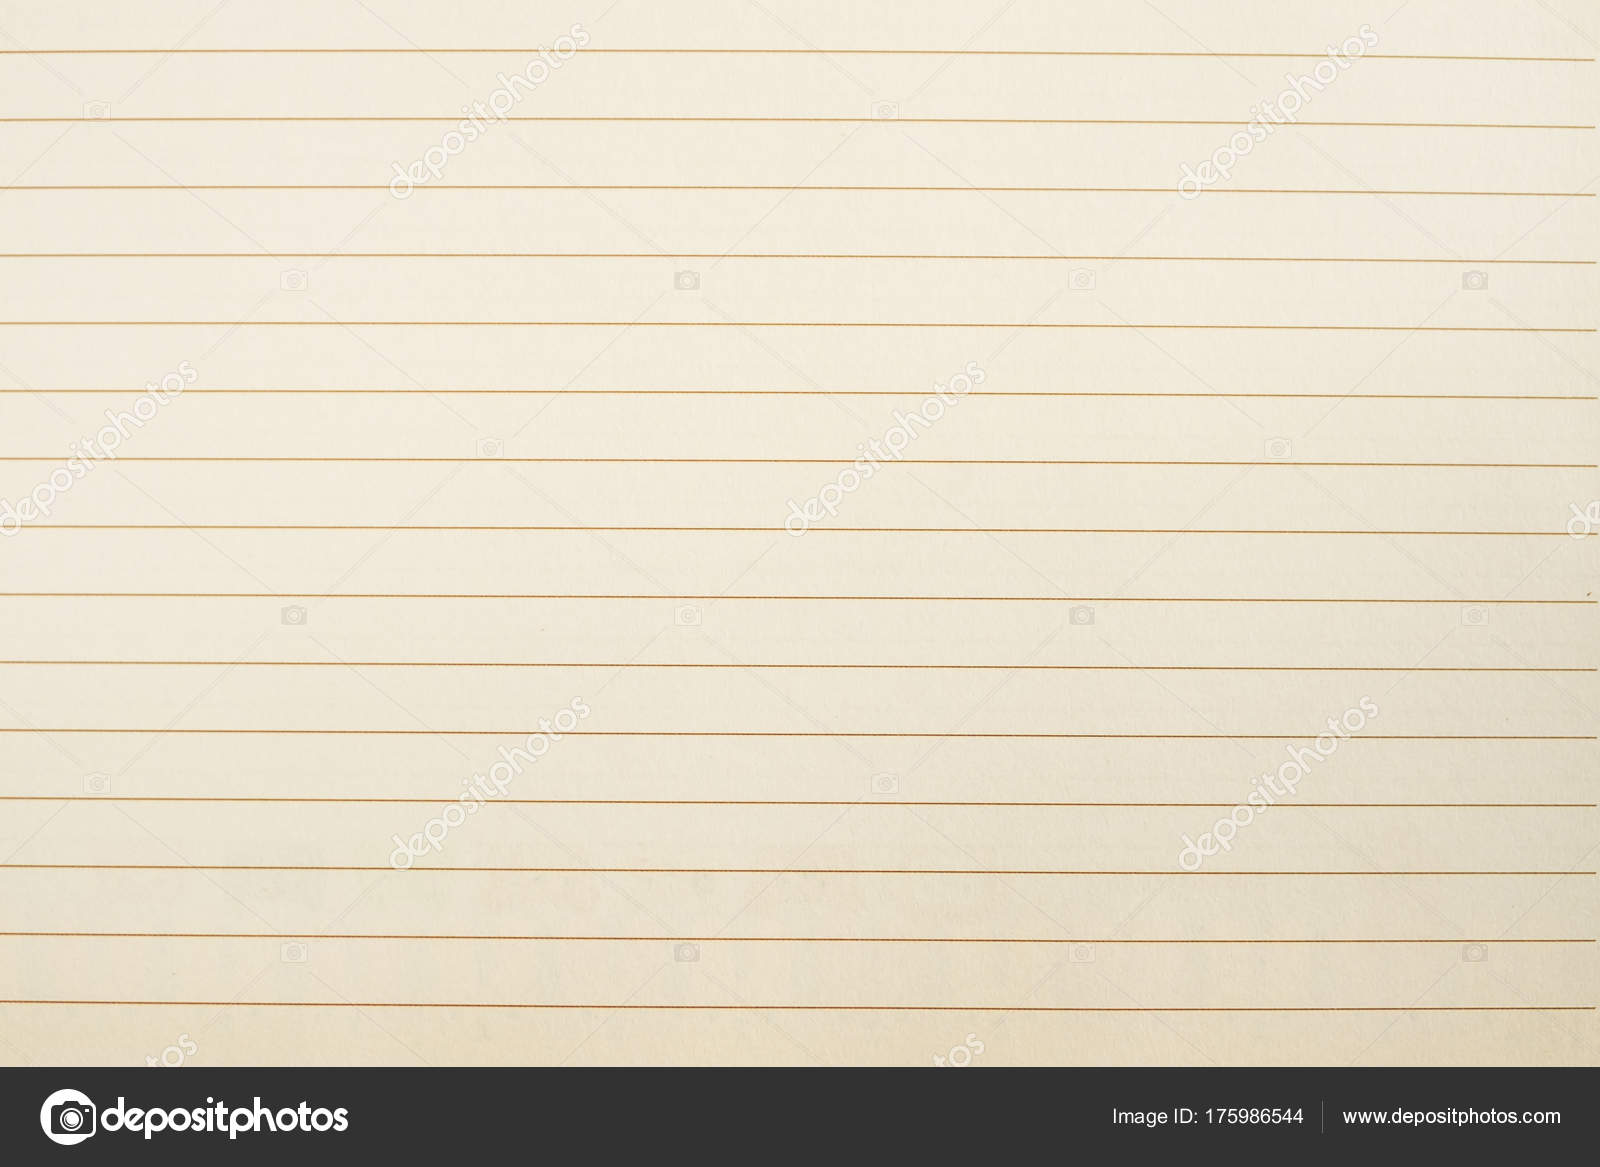 blank paper lines guide handwriting stock photo iamnoonmai